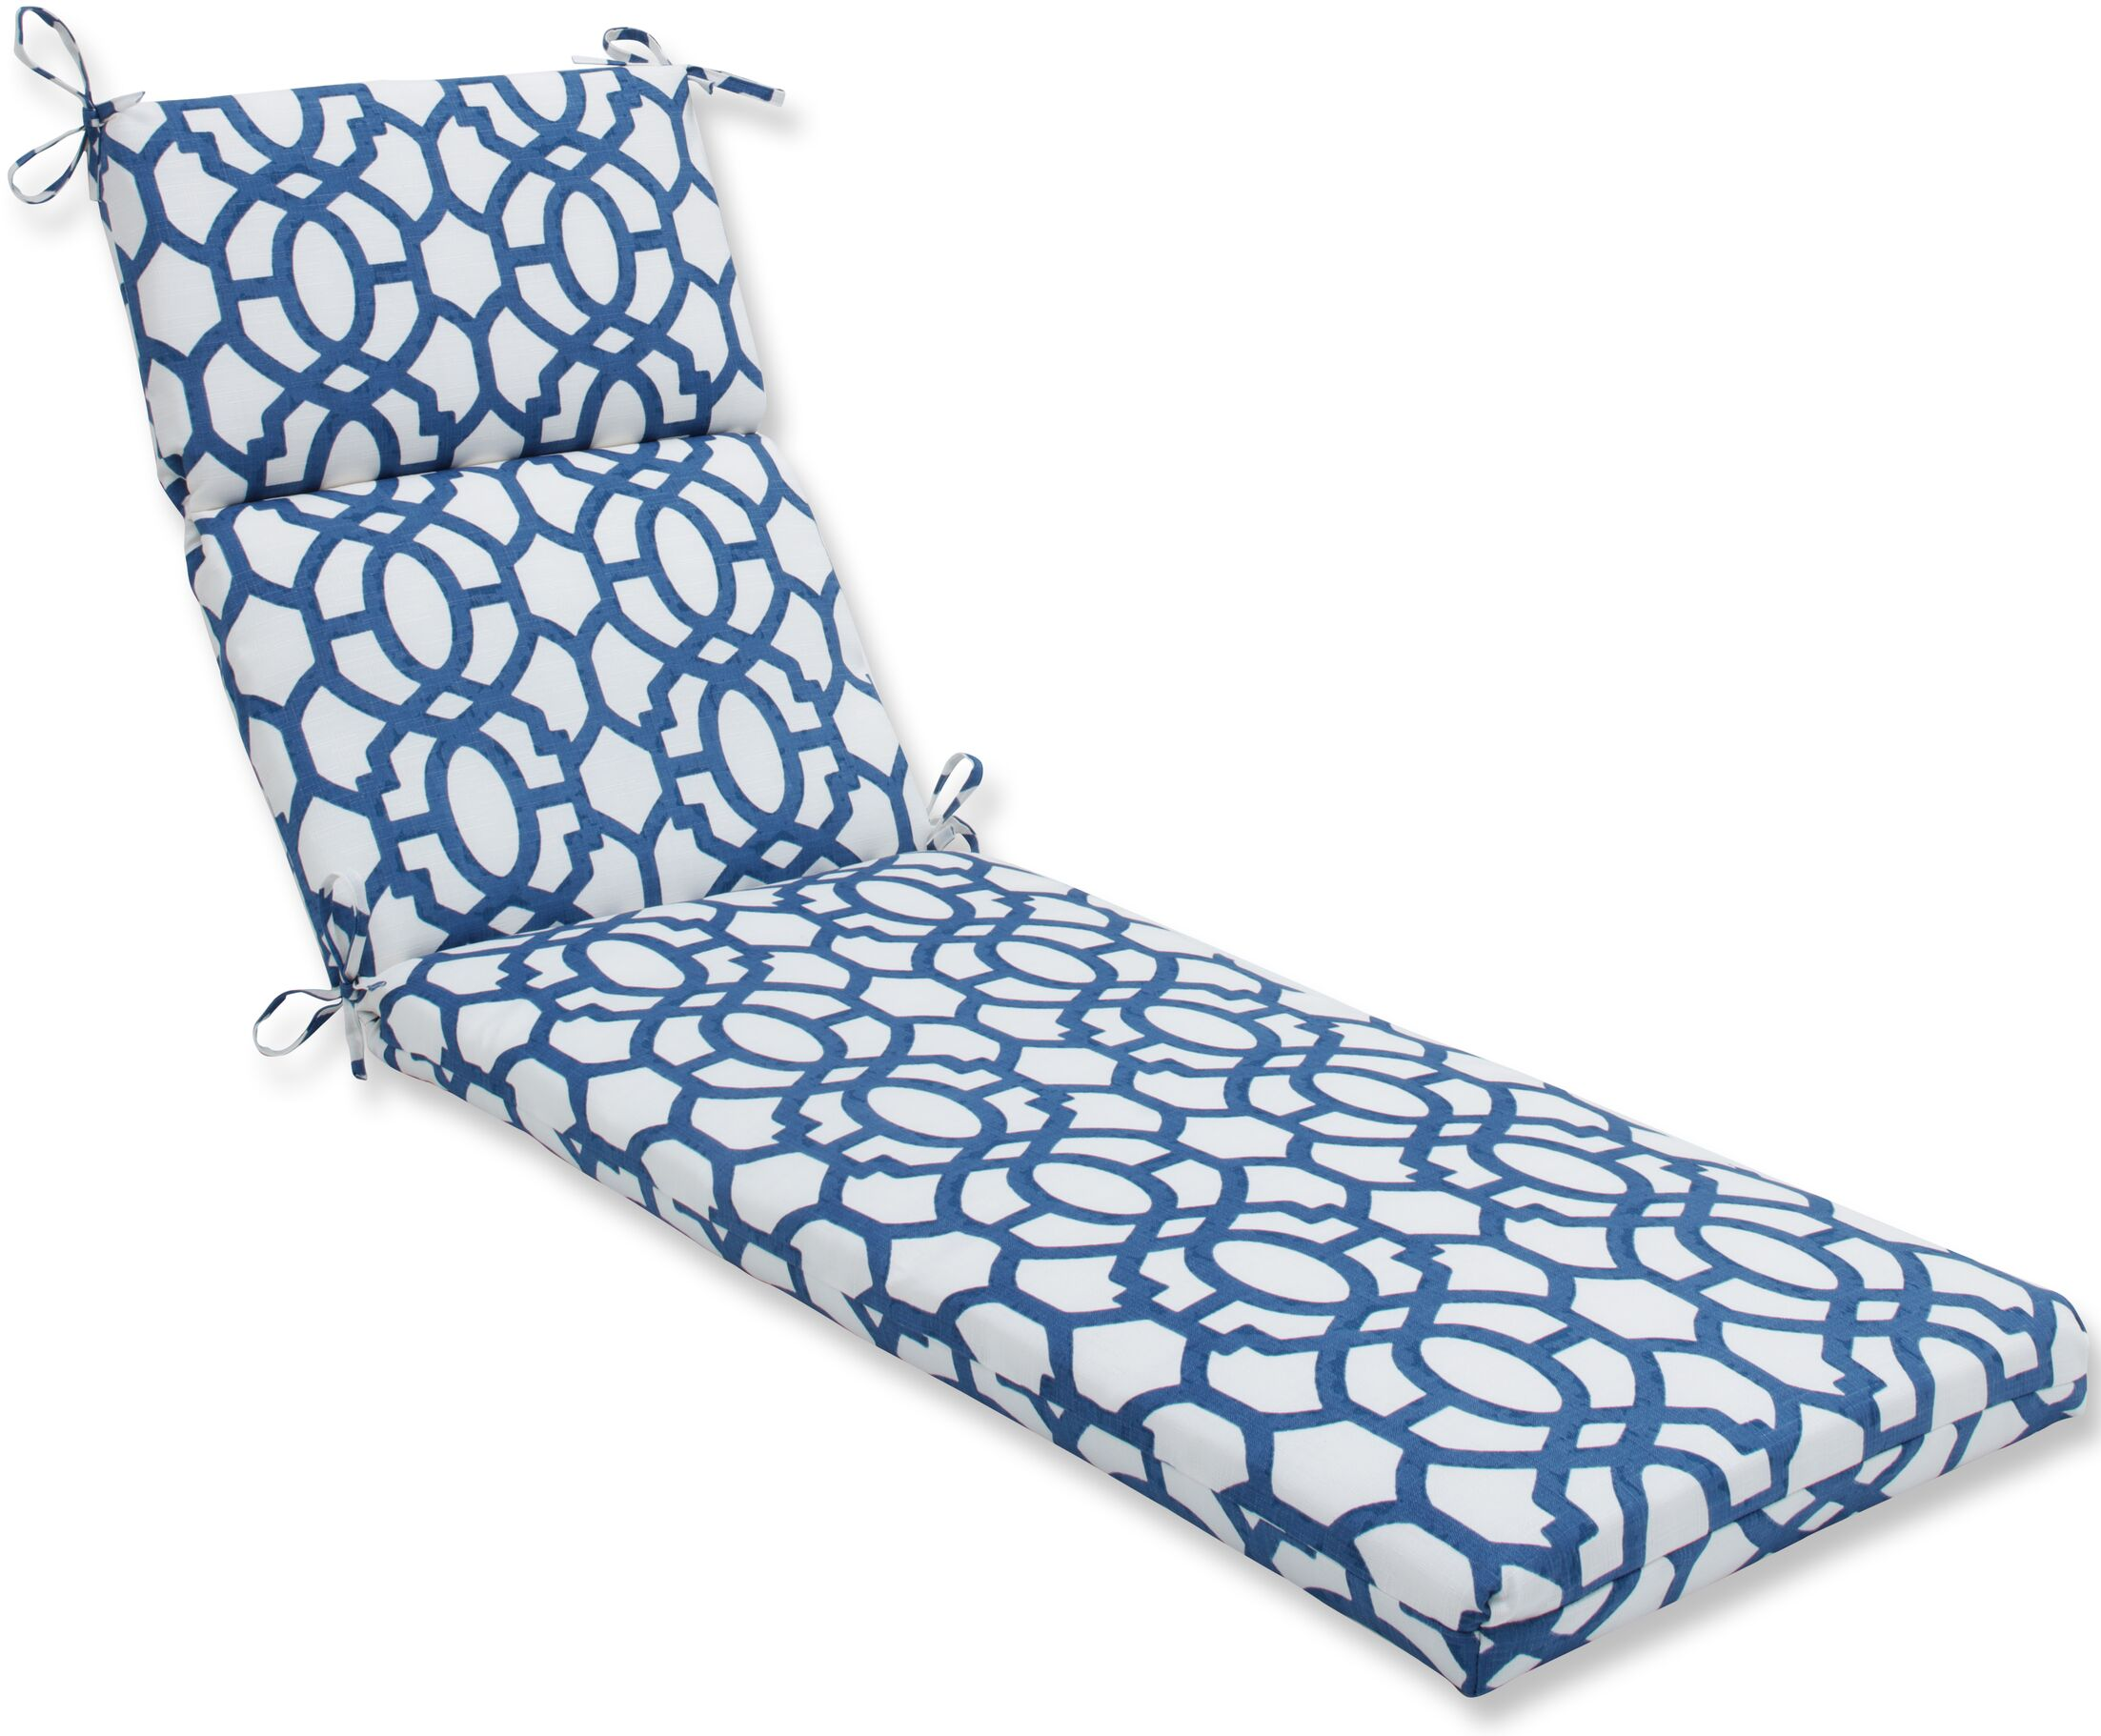 Claflin Indoor/Outdoor Chaise Lounge Cushion